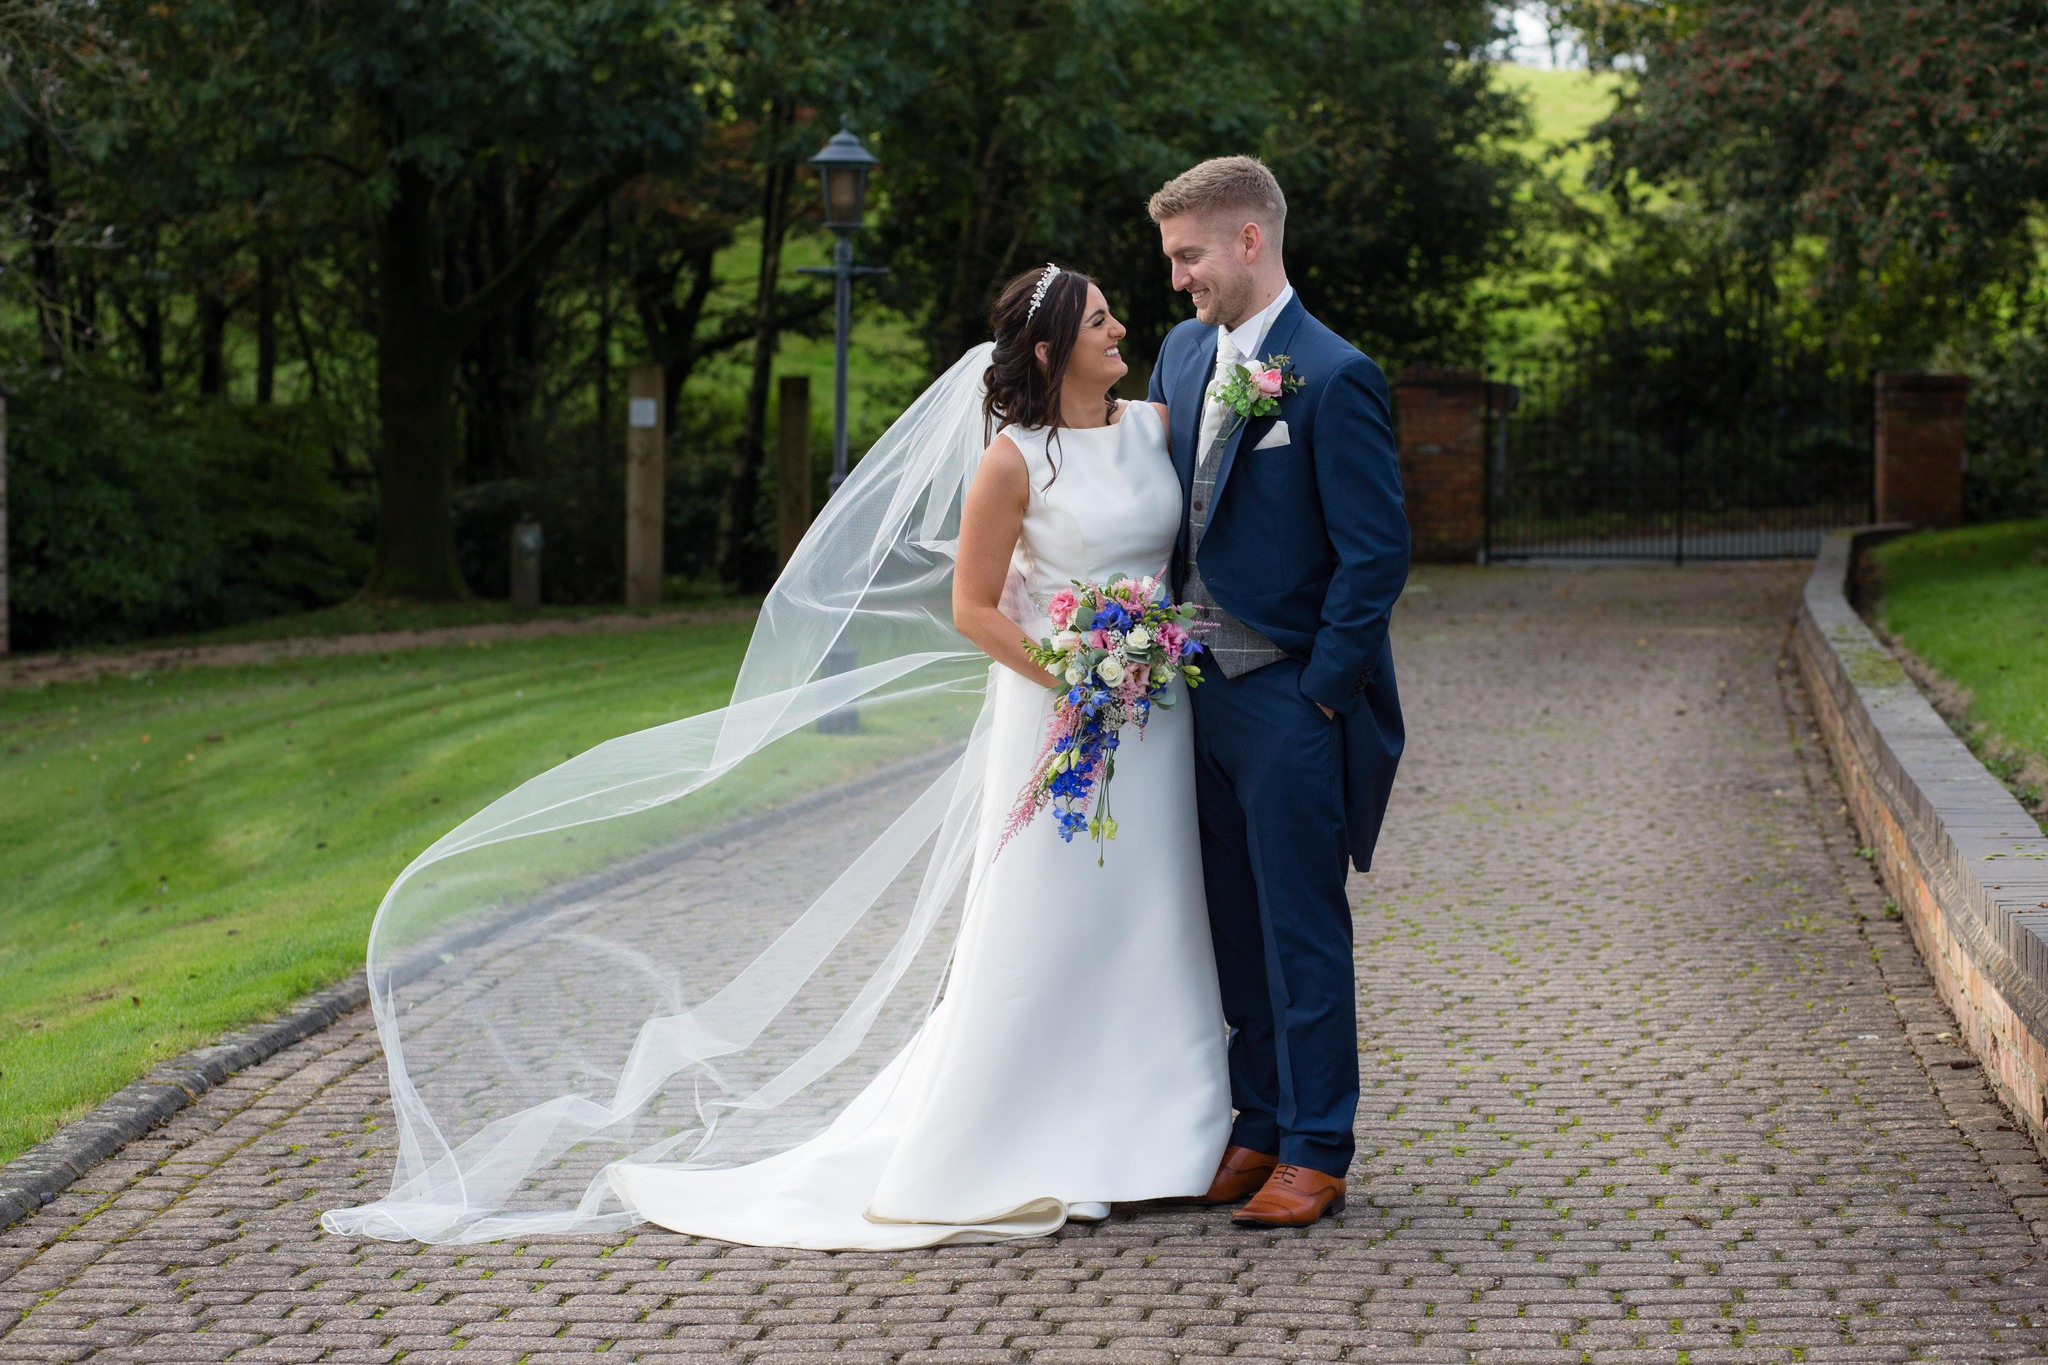 Shropshire wedding photographer Moddershall Oaks wedding